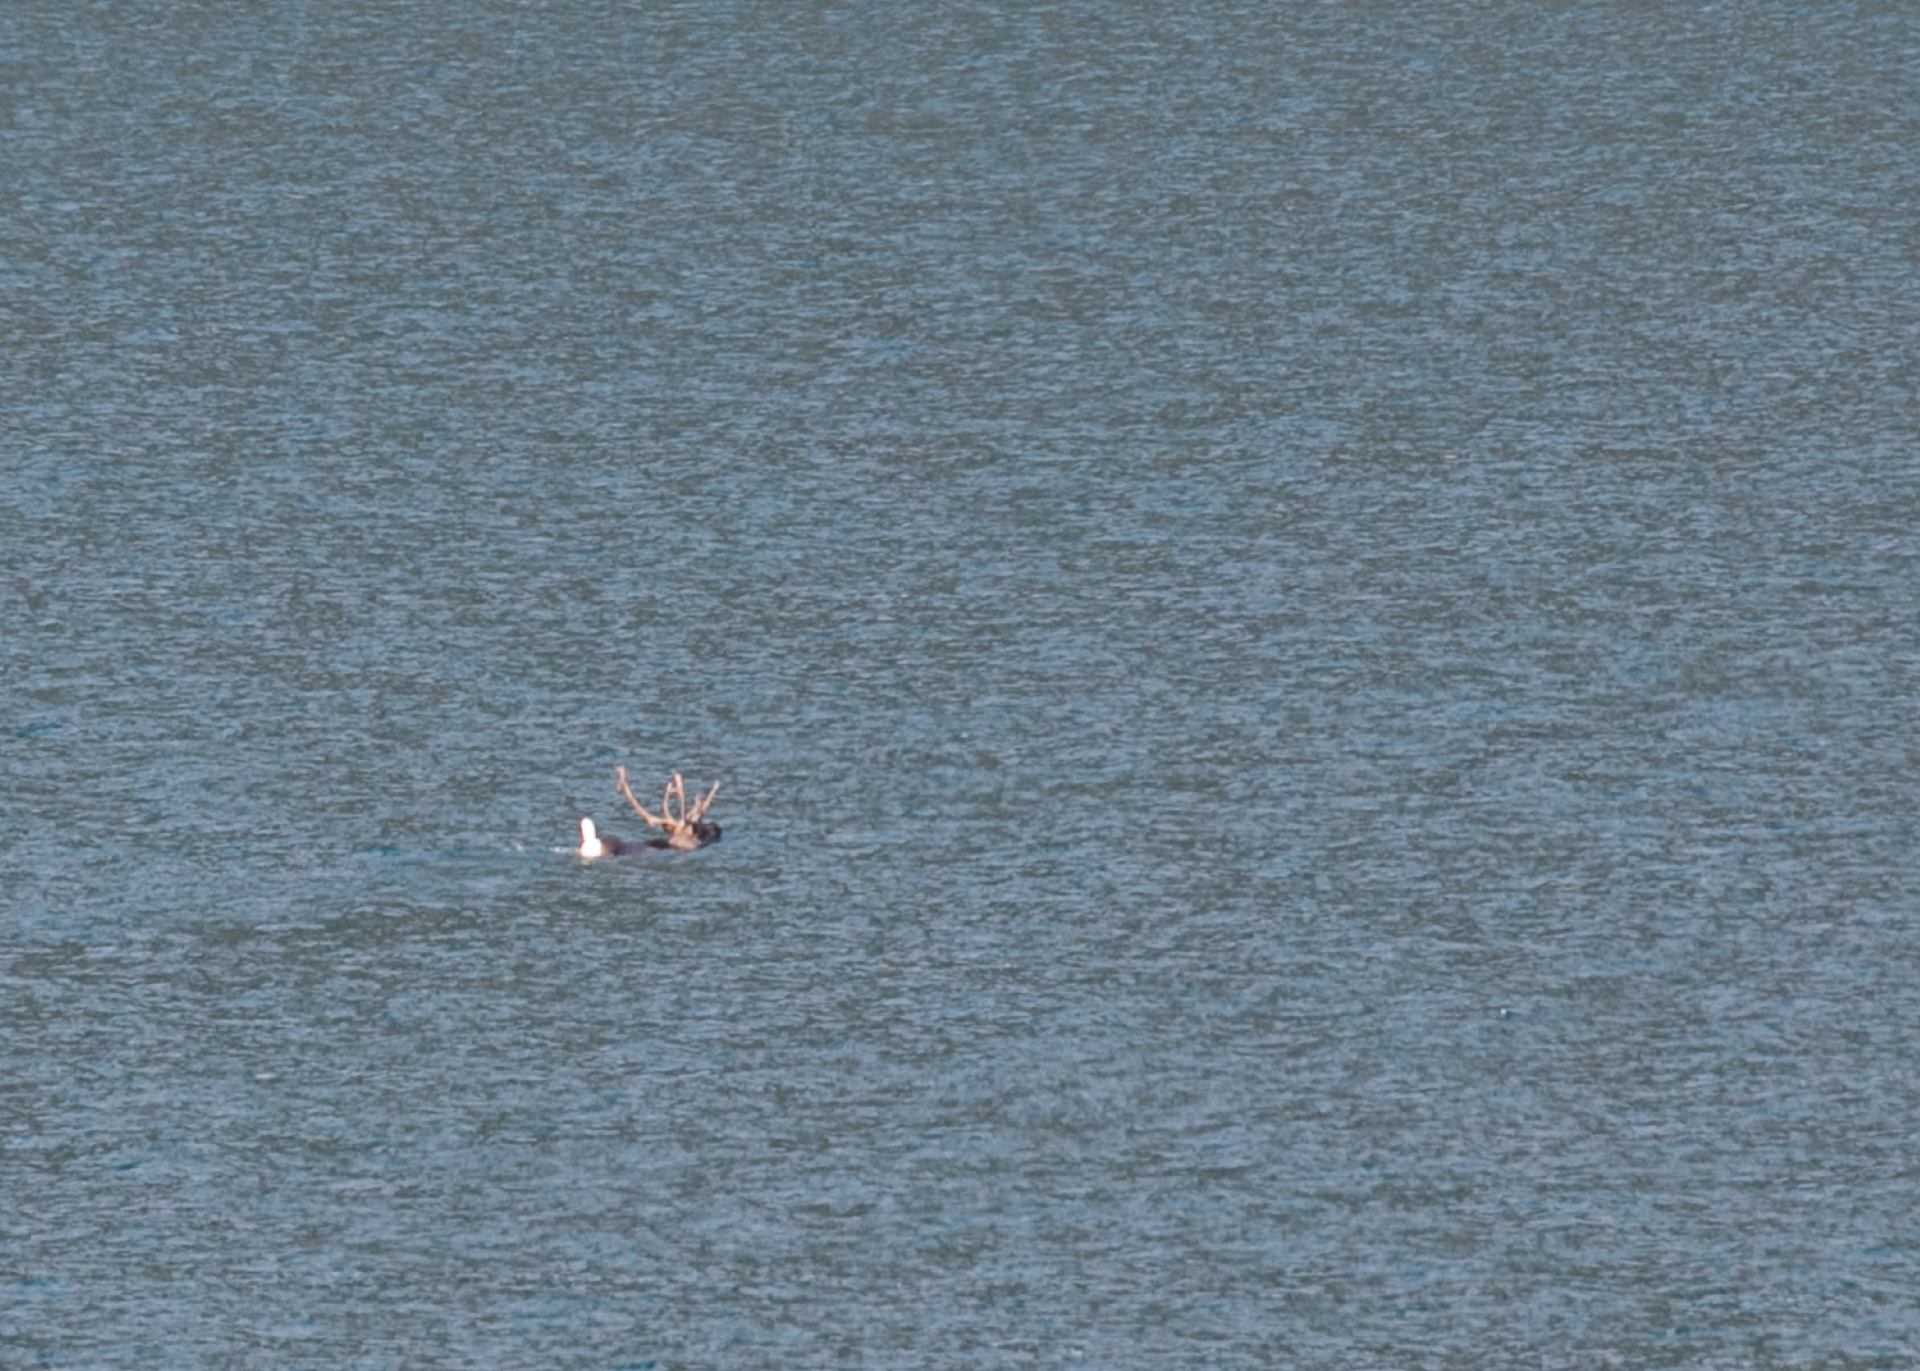 Poor quality photo, but a closer look at our swimming caribou.